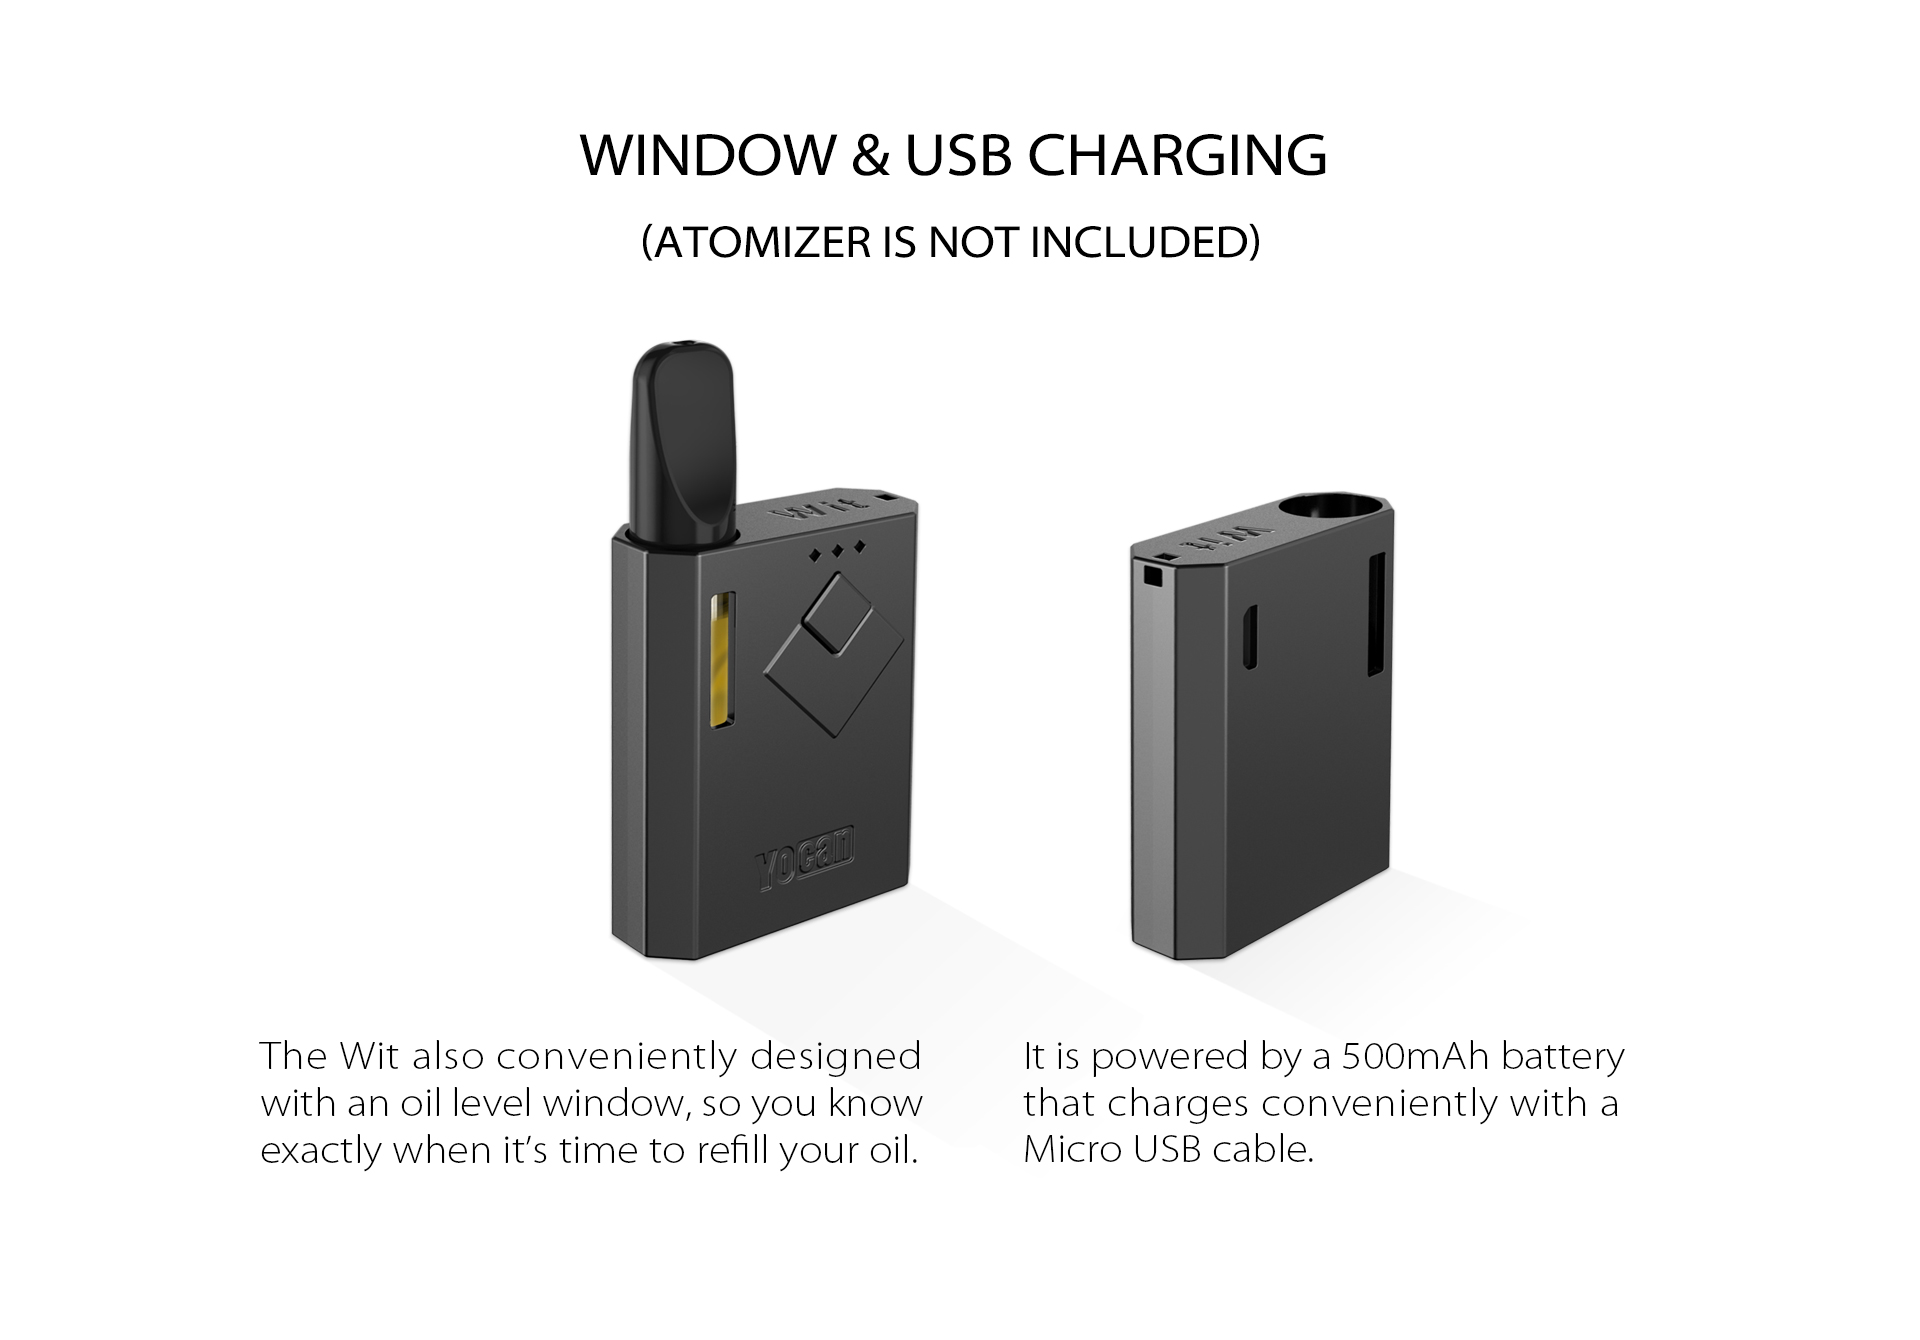 The Yocan Wit Box Mod Battery designed with an oil window & USB charging.